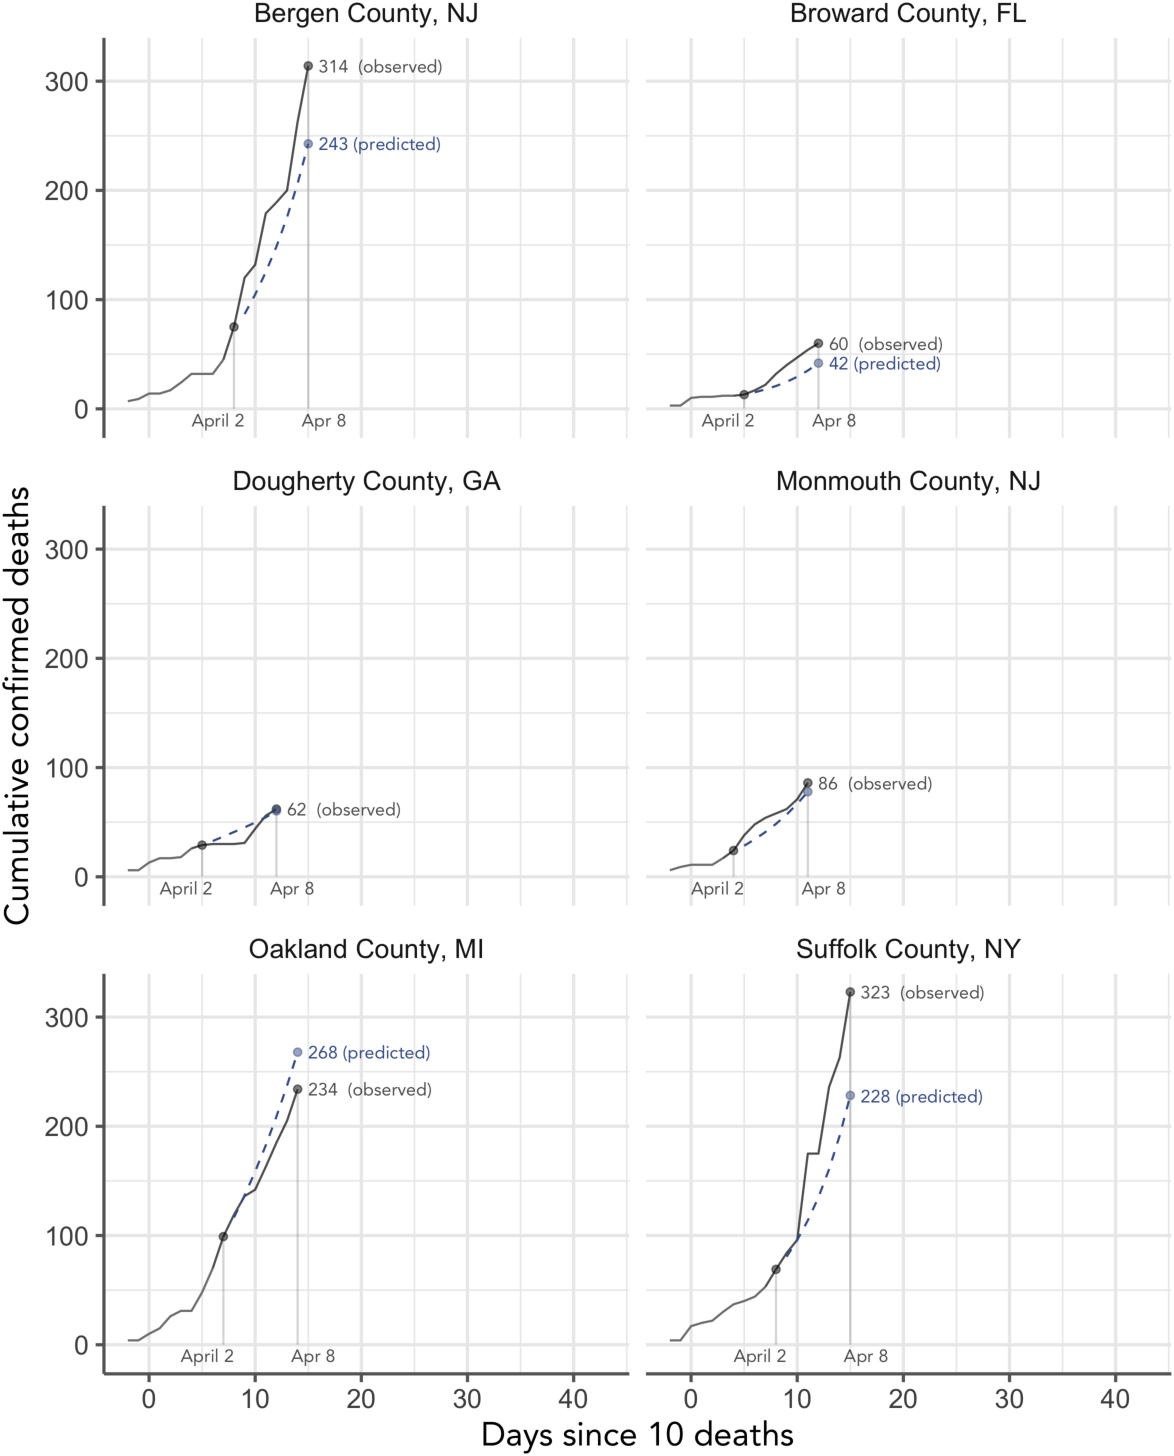 Figure 4 for Curating a COVID-19 data repository and forecasting county-level death counts in the United States